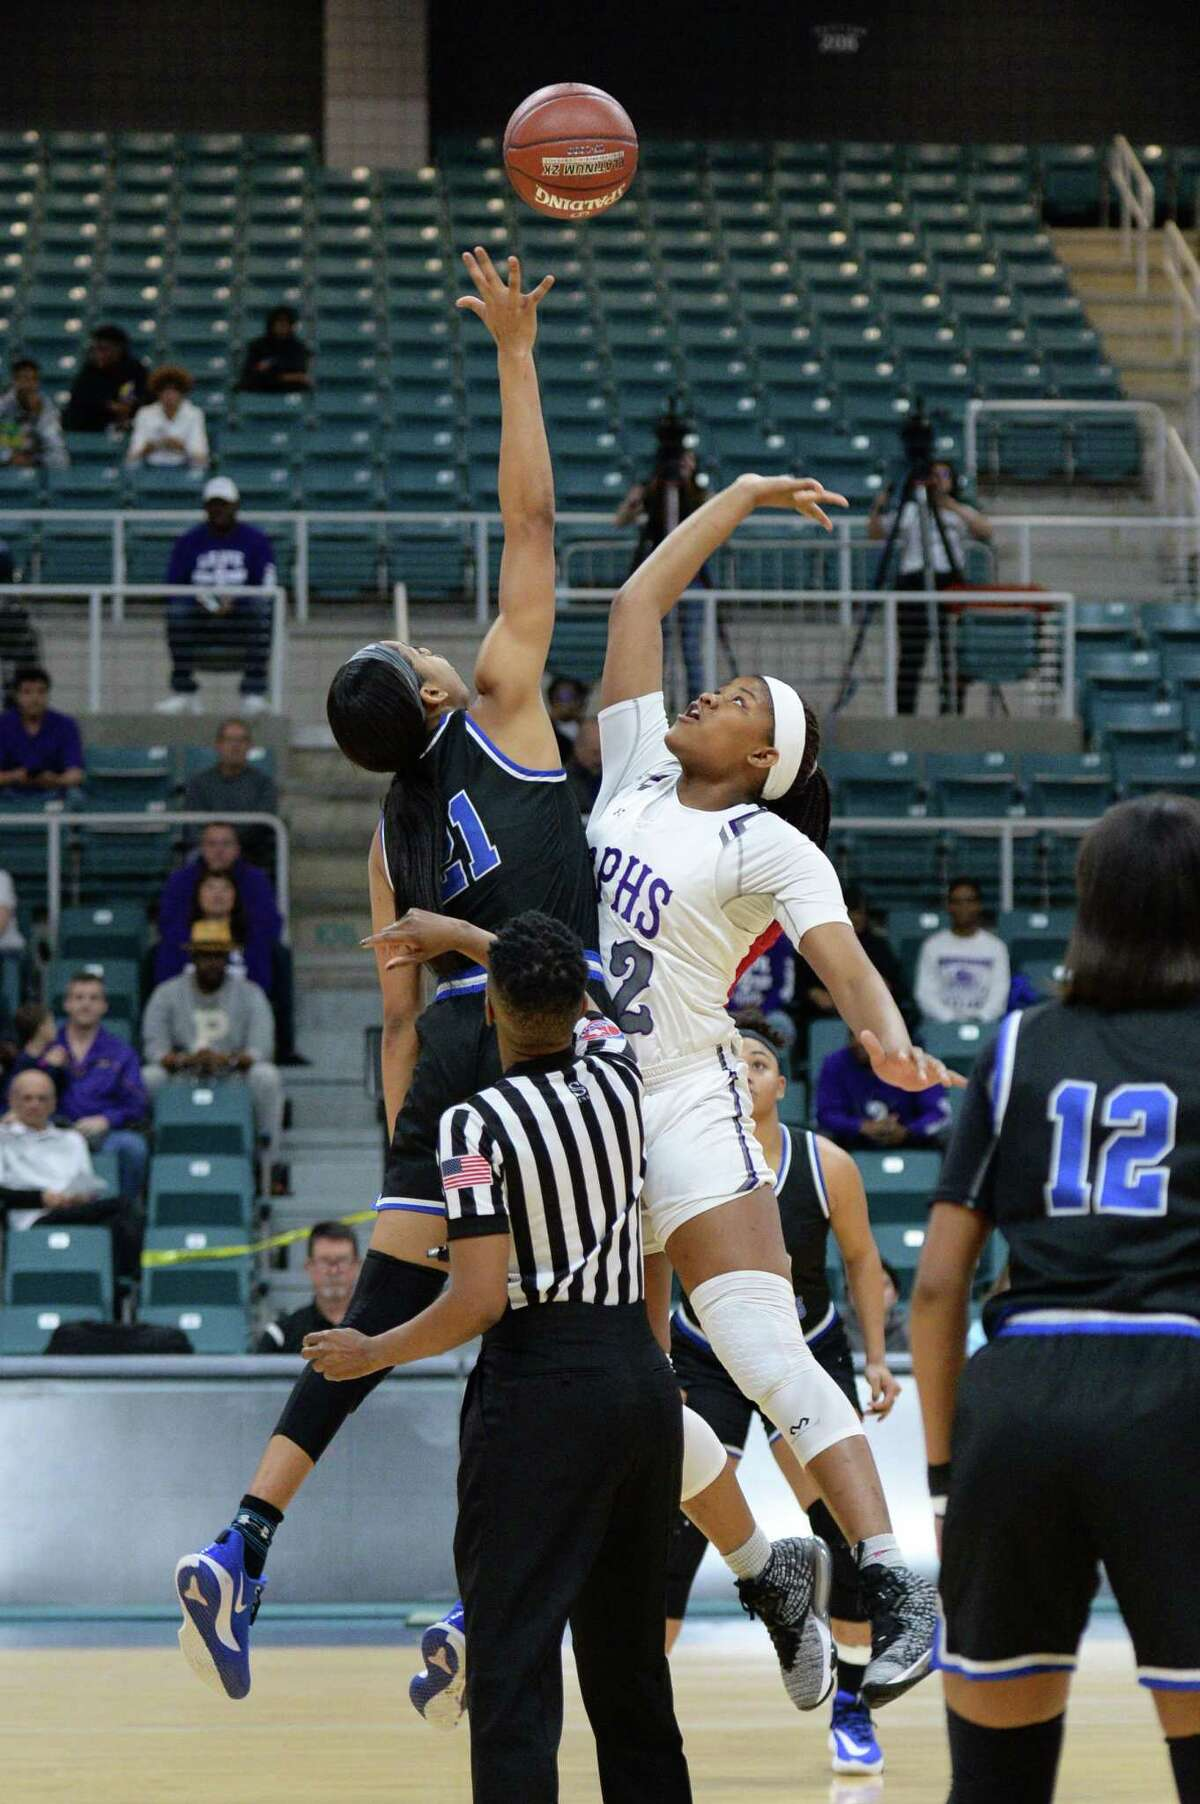 Dala Allen (32) of Ridge Point and Niyah Johnson (21) of Clear Springs compete for the tipoff to start a Girls 6A Region III semifinal play-off game between the Ridge Point Panthers and the Clear Springs Chargers on Friday, February 28, 2020 at the Leonard Merrell Center, Katy, TX.